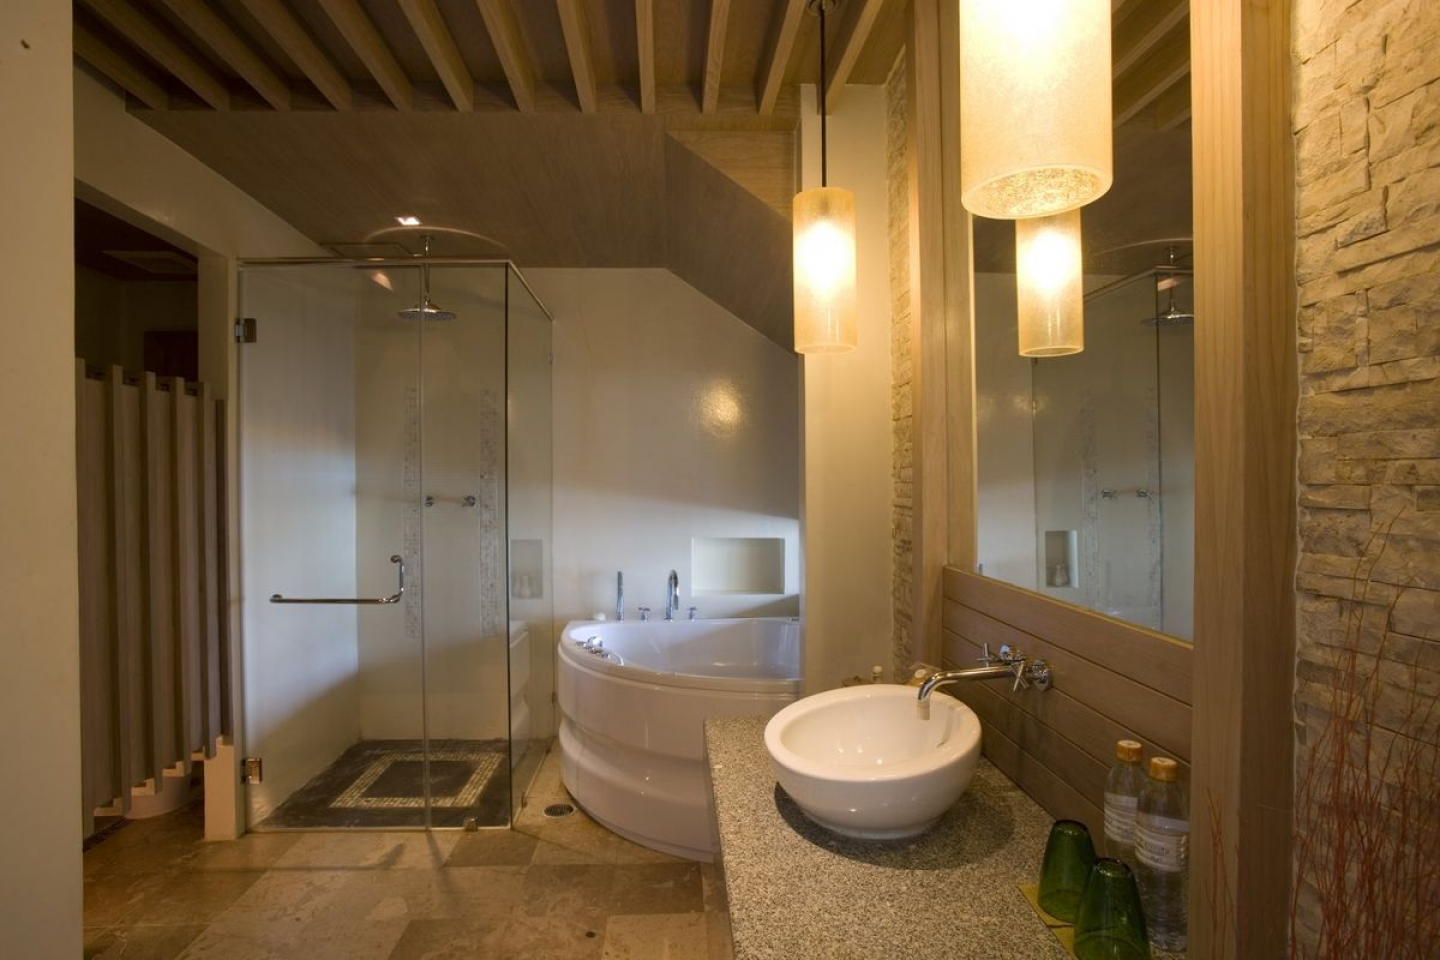 spa bathroom images photo - 6